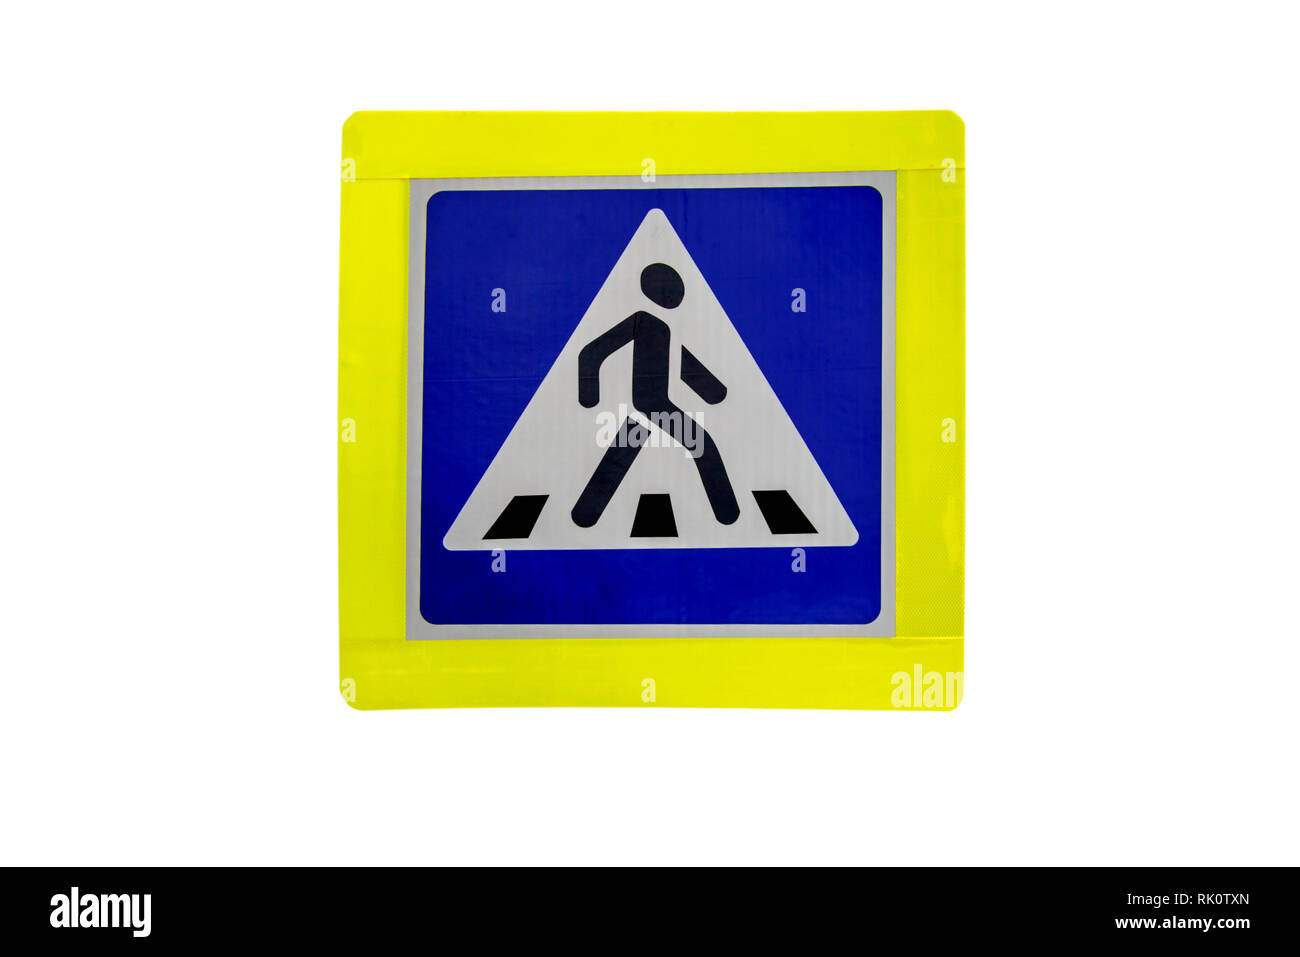 Pedestrian crossing, road sign isolated on white background. - Stock Image